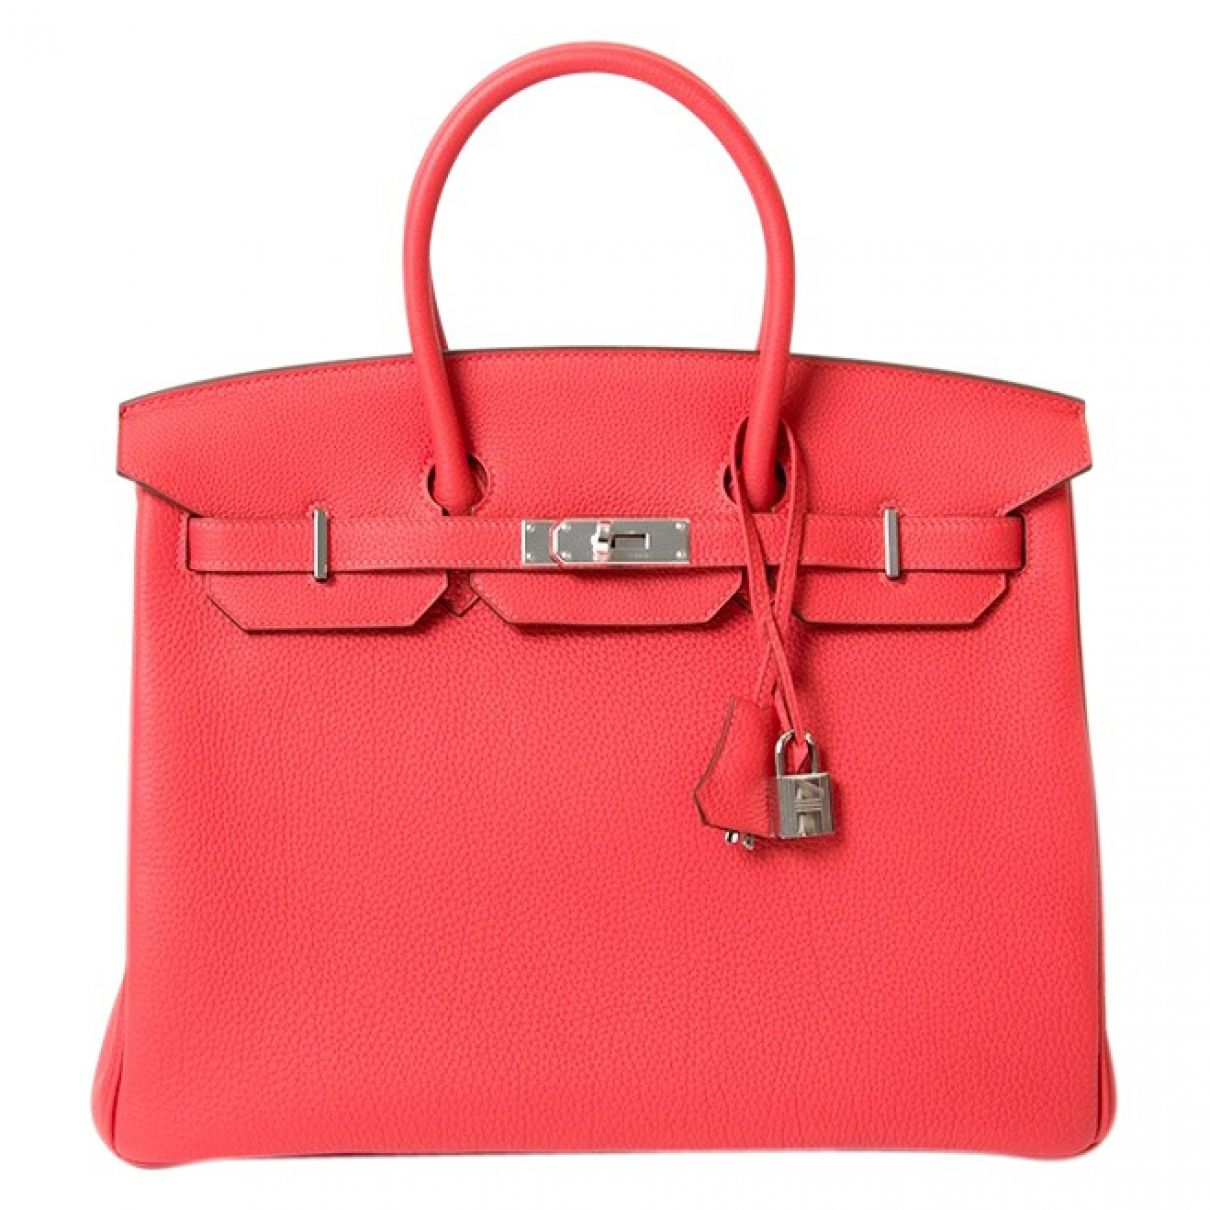 262ac8b23d Hermes Red Leather Birkin Bag | Vestiaire Collective | Bags